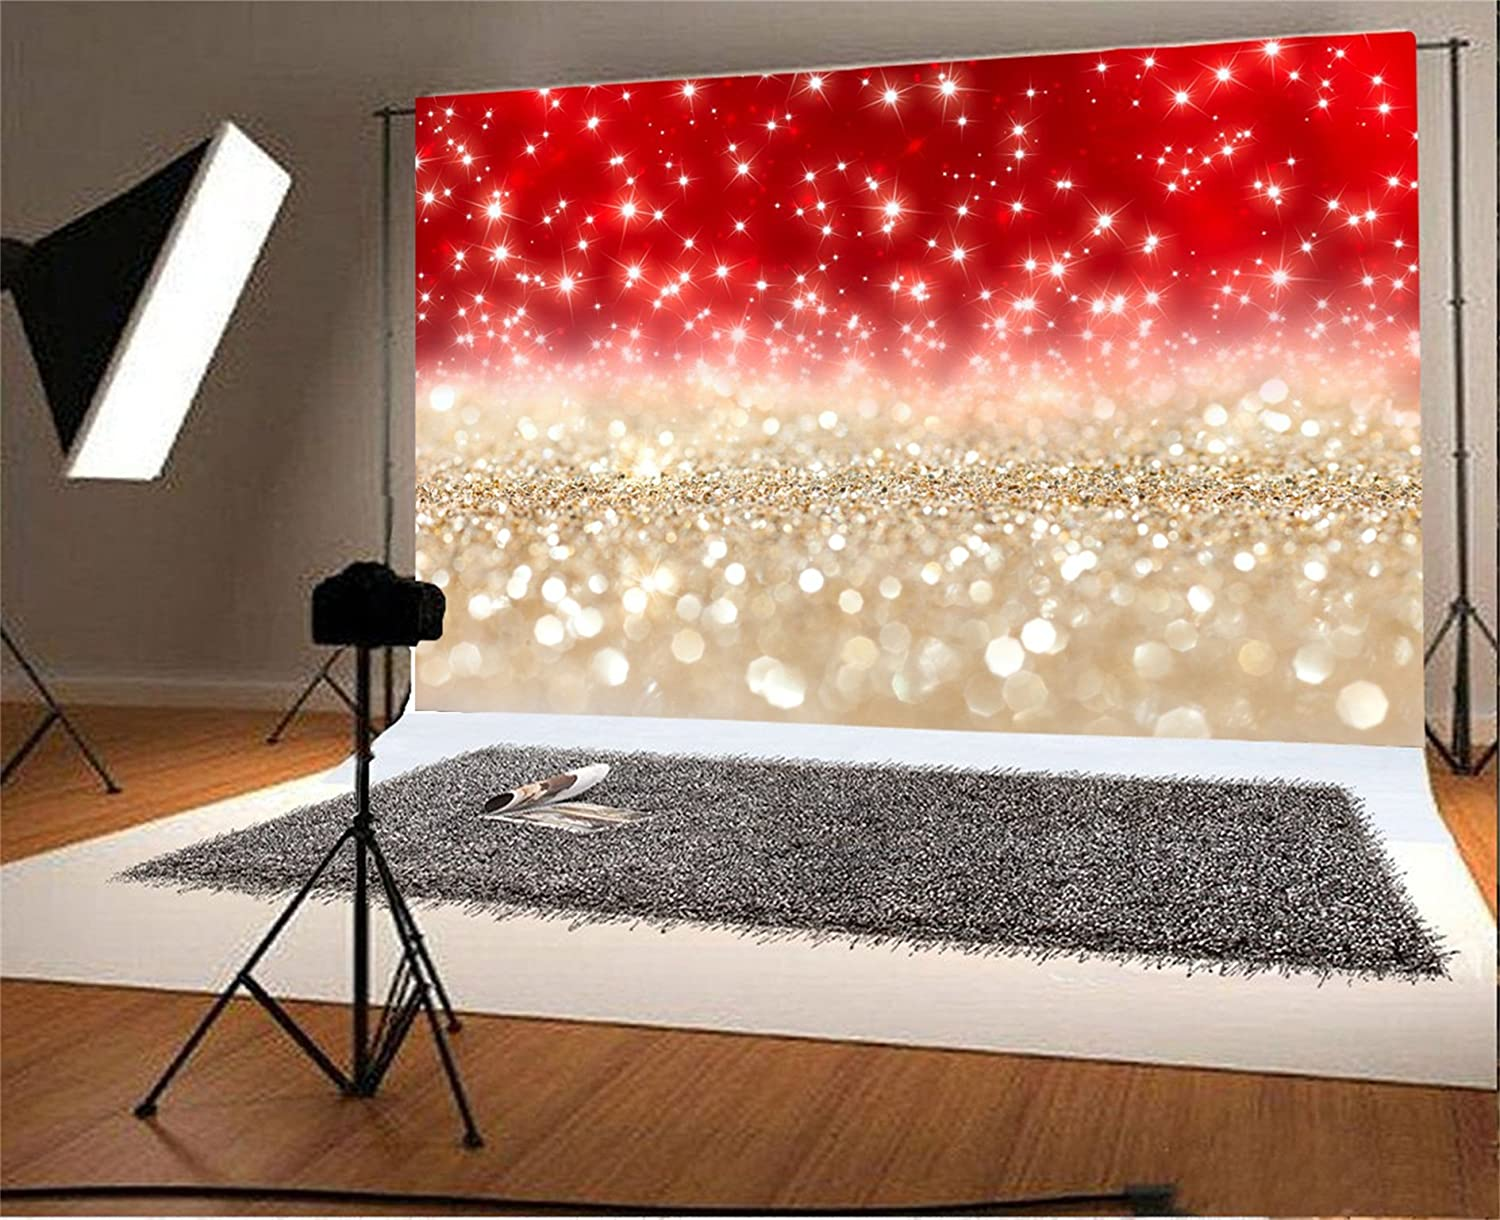 CSFOTO 7x5ft Background for Red and Gold Glitter Bokeh Photography Backdrop Birthday Party Wedding Decoration Bridal Party Glistening Sequins Neon Glister Photo Studio Props Polyester Wallpaper